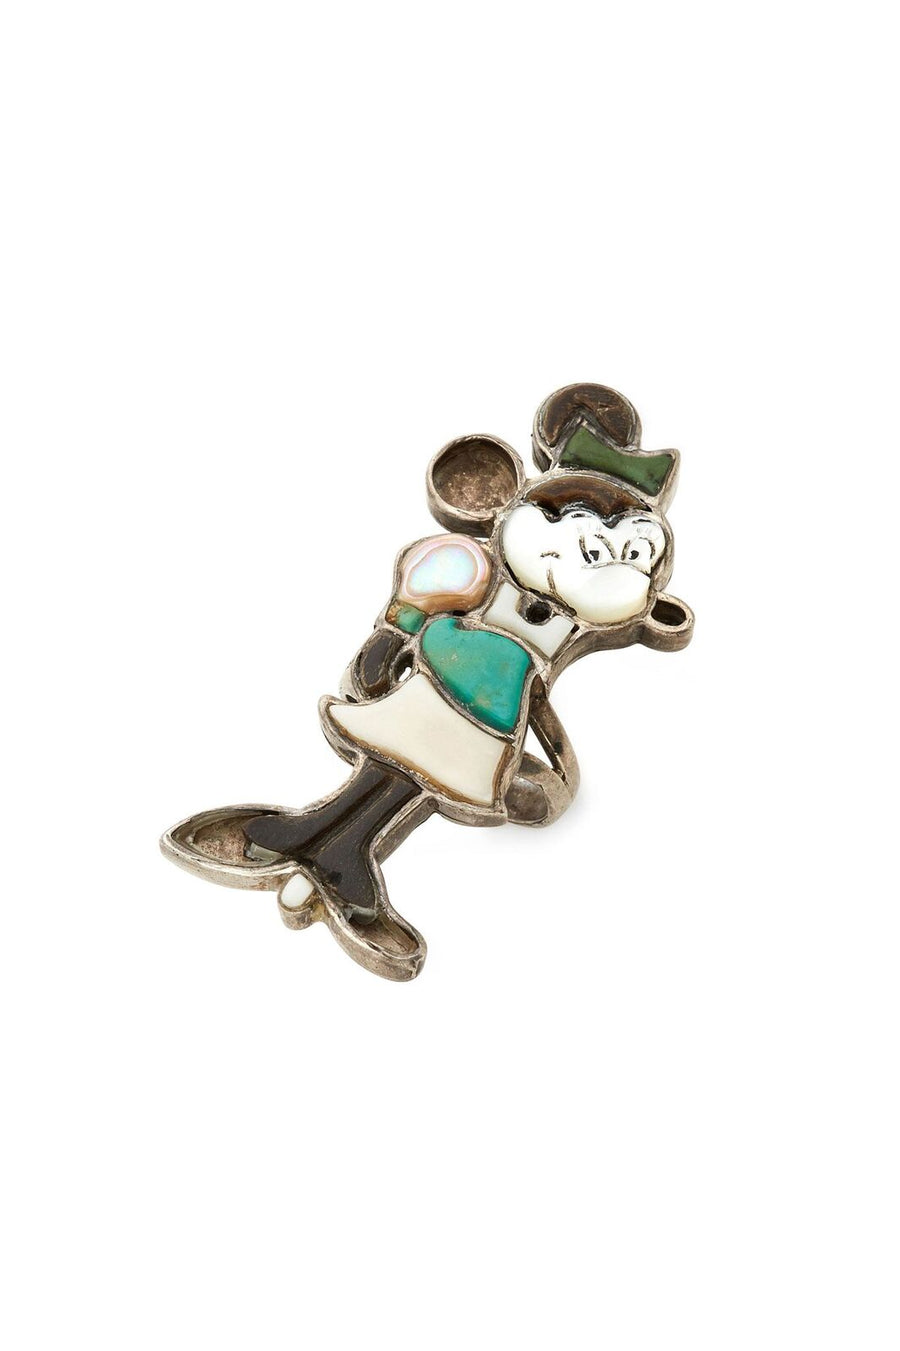 Carol Kee Sterling Silver Vintage Minnie Ring - SZ 5